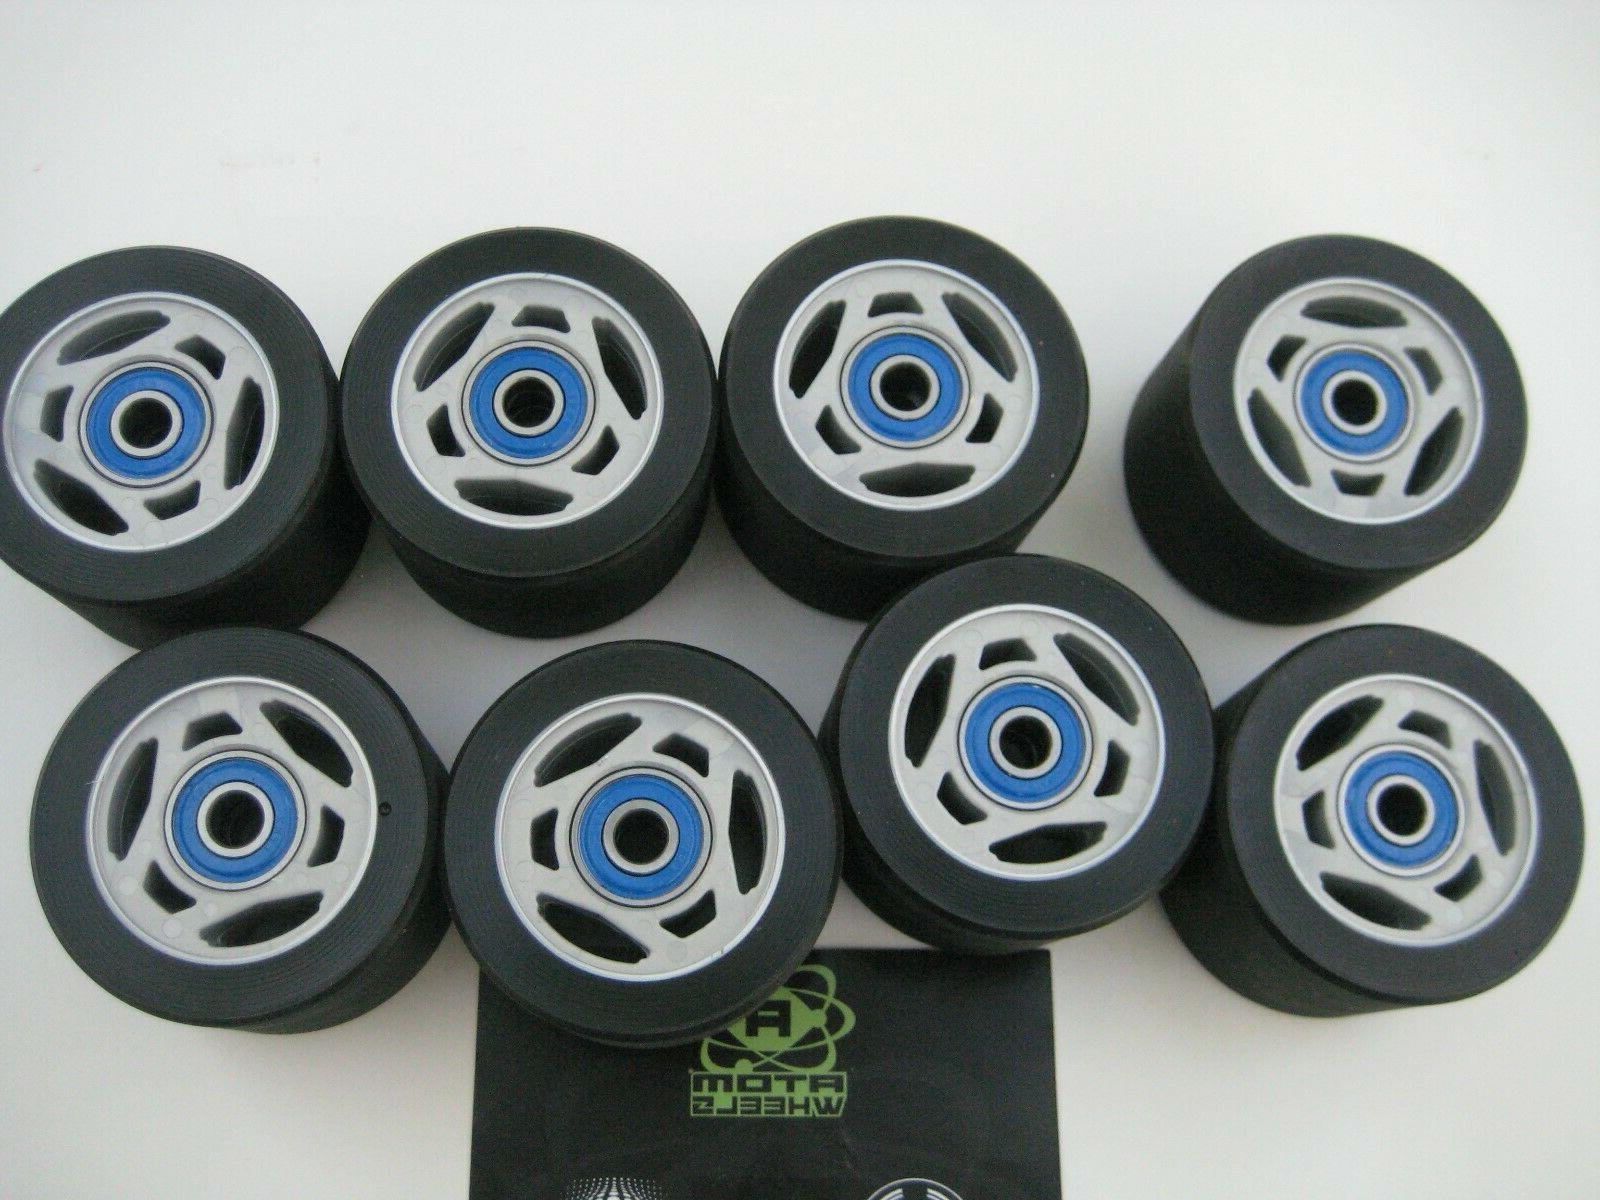 ATOM DERBY WHEELS 8 NEW BEARINGS LYNX speed